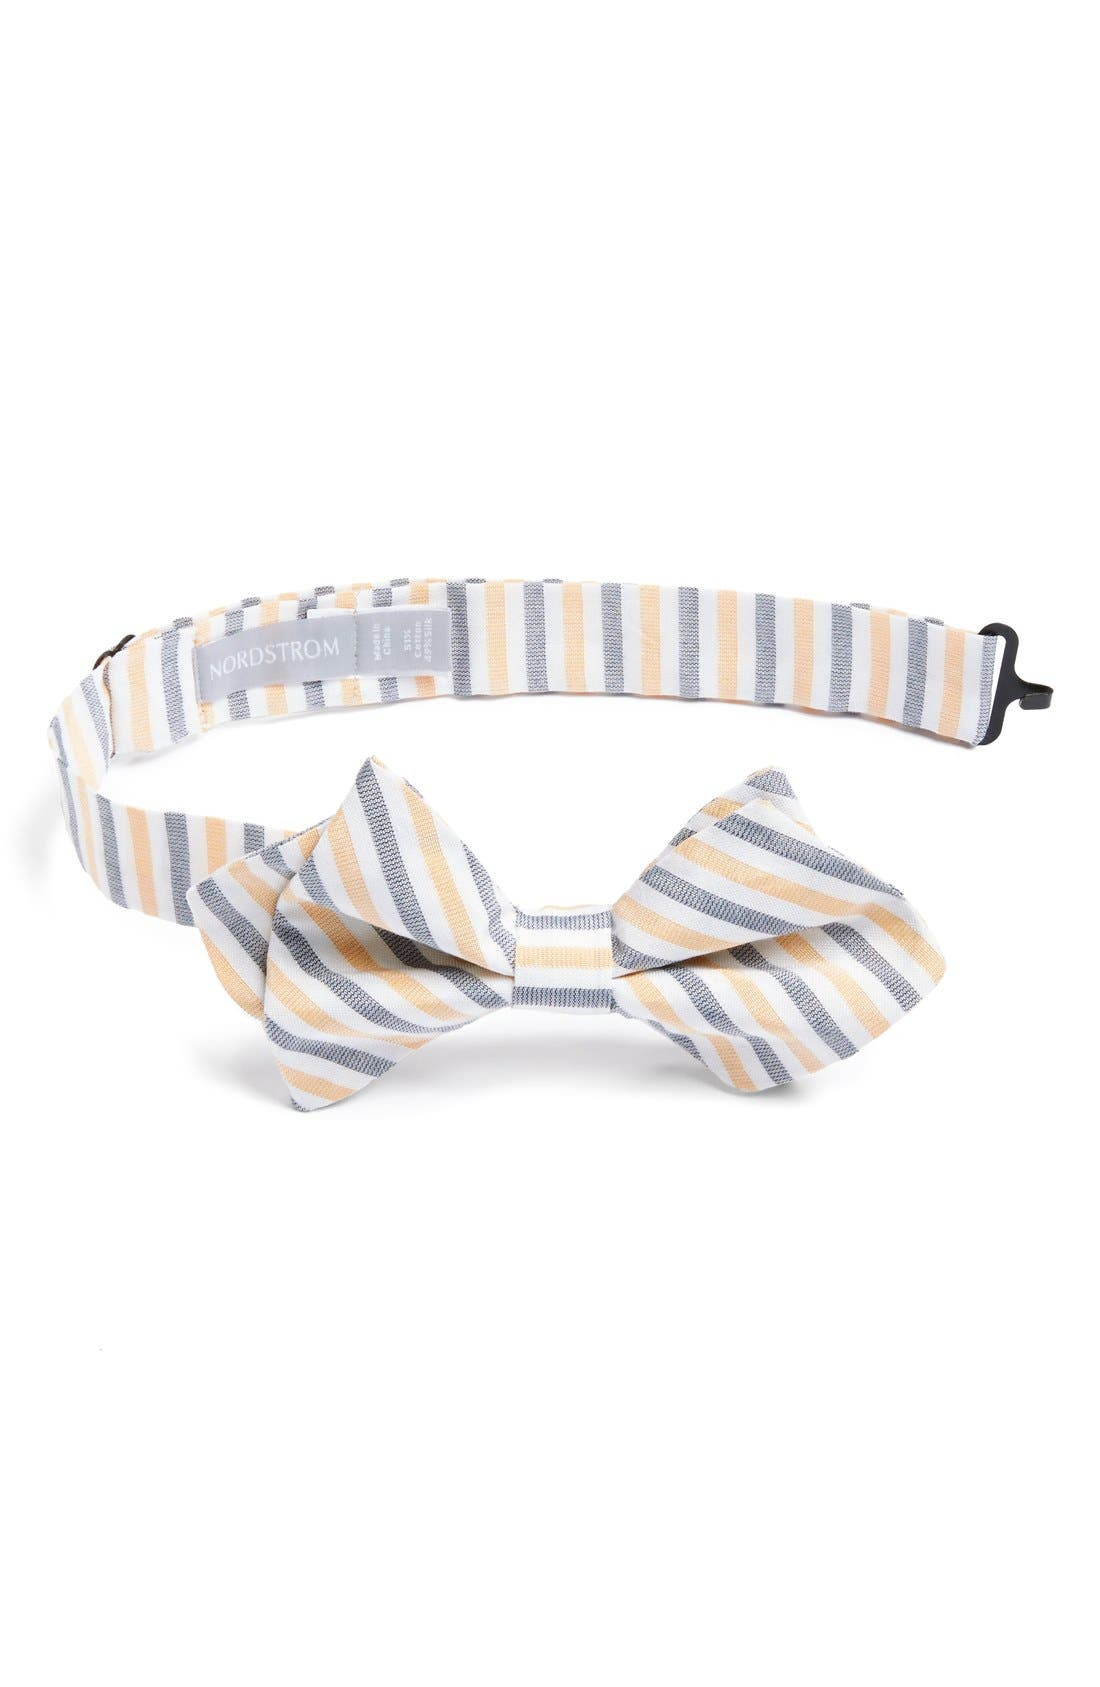 Alternate Image 1 Selected - Nordstrom Cotton & Silk Bow Tie (Big Boys)